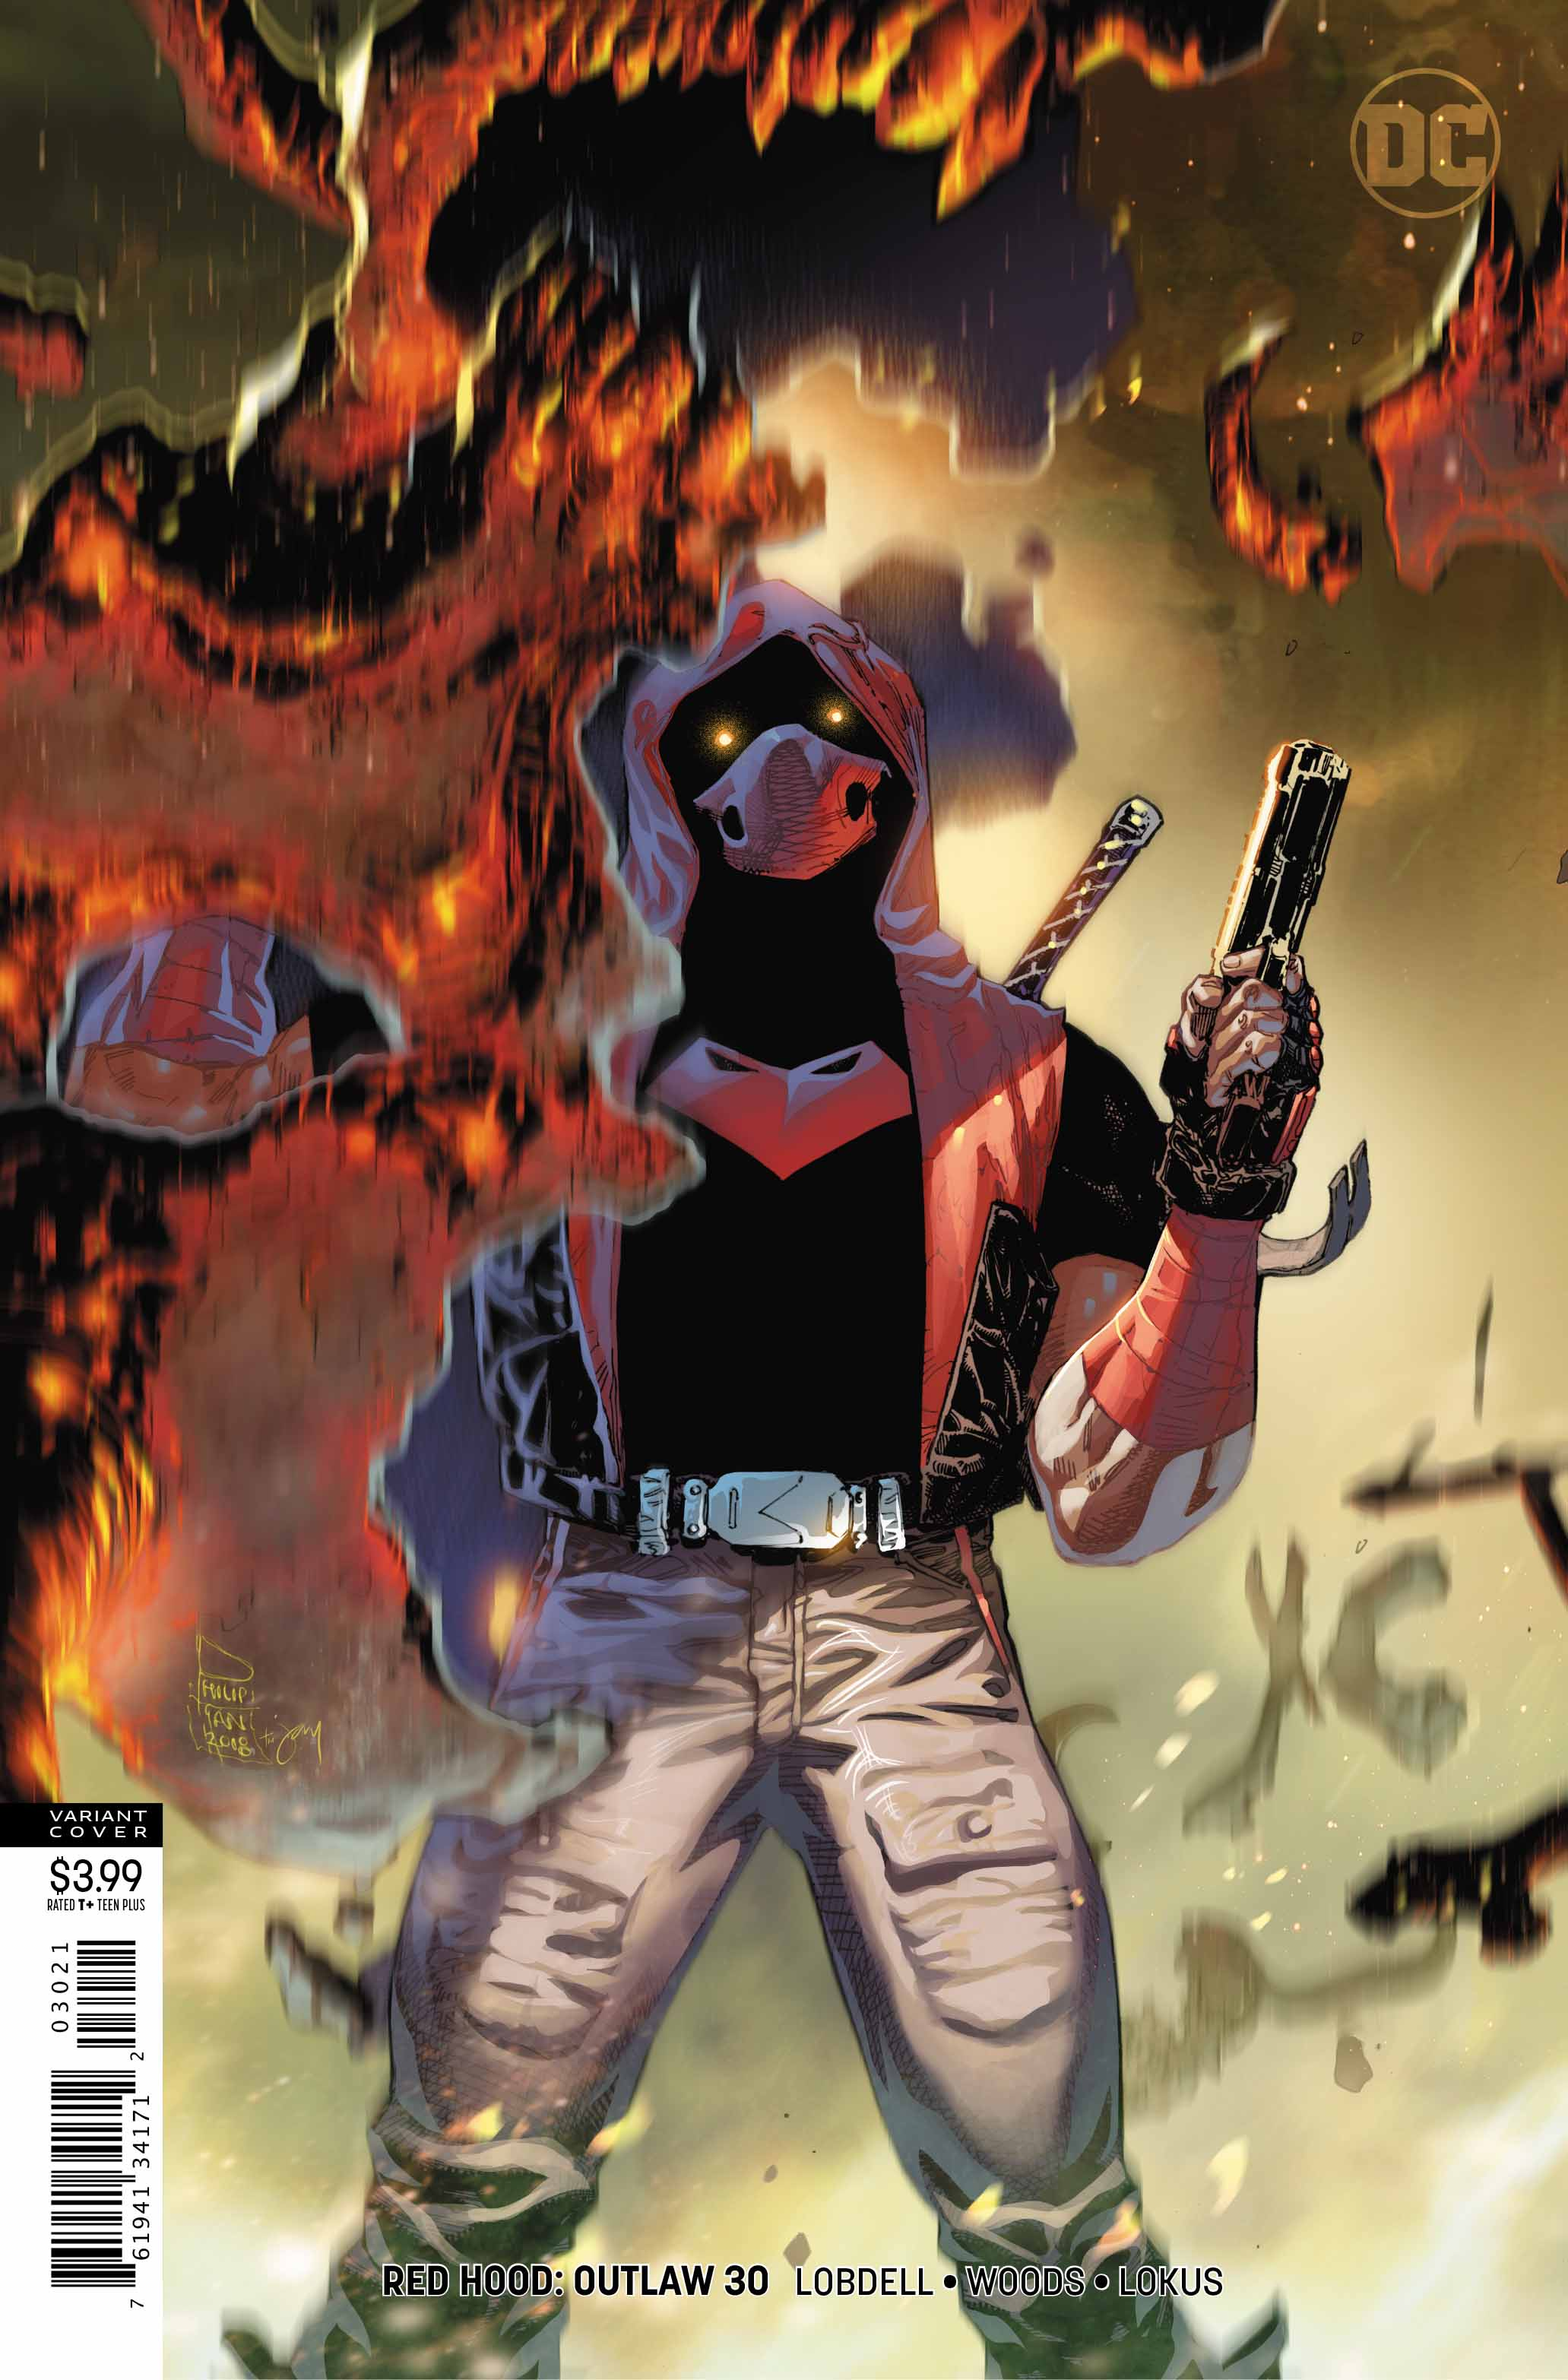 Red Hood: Outlaw #30 review: Great art can't save a slow, uneventful story